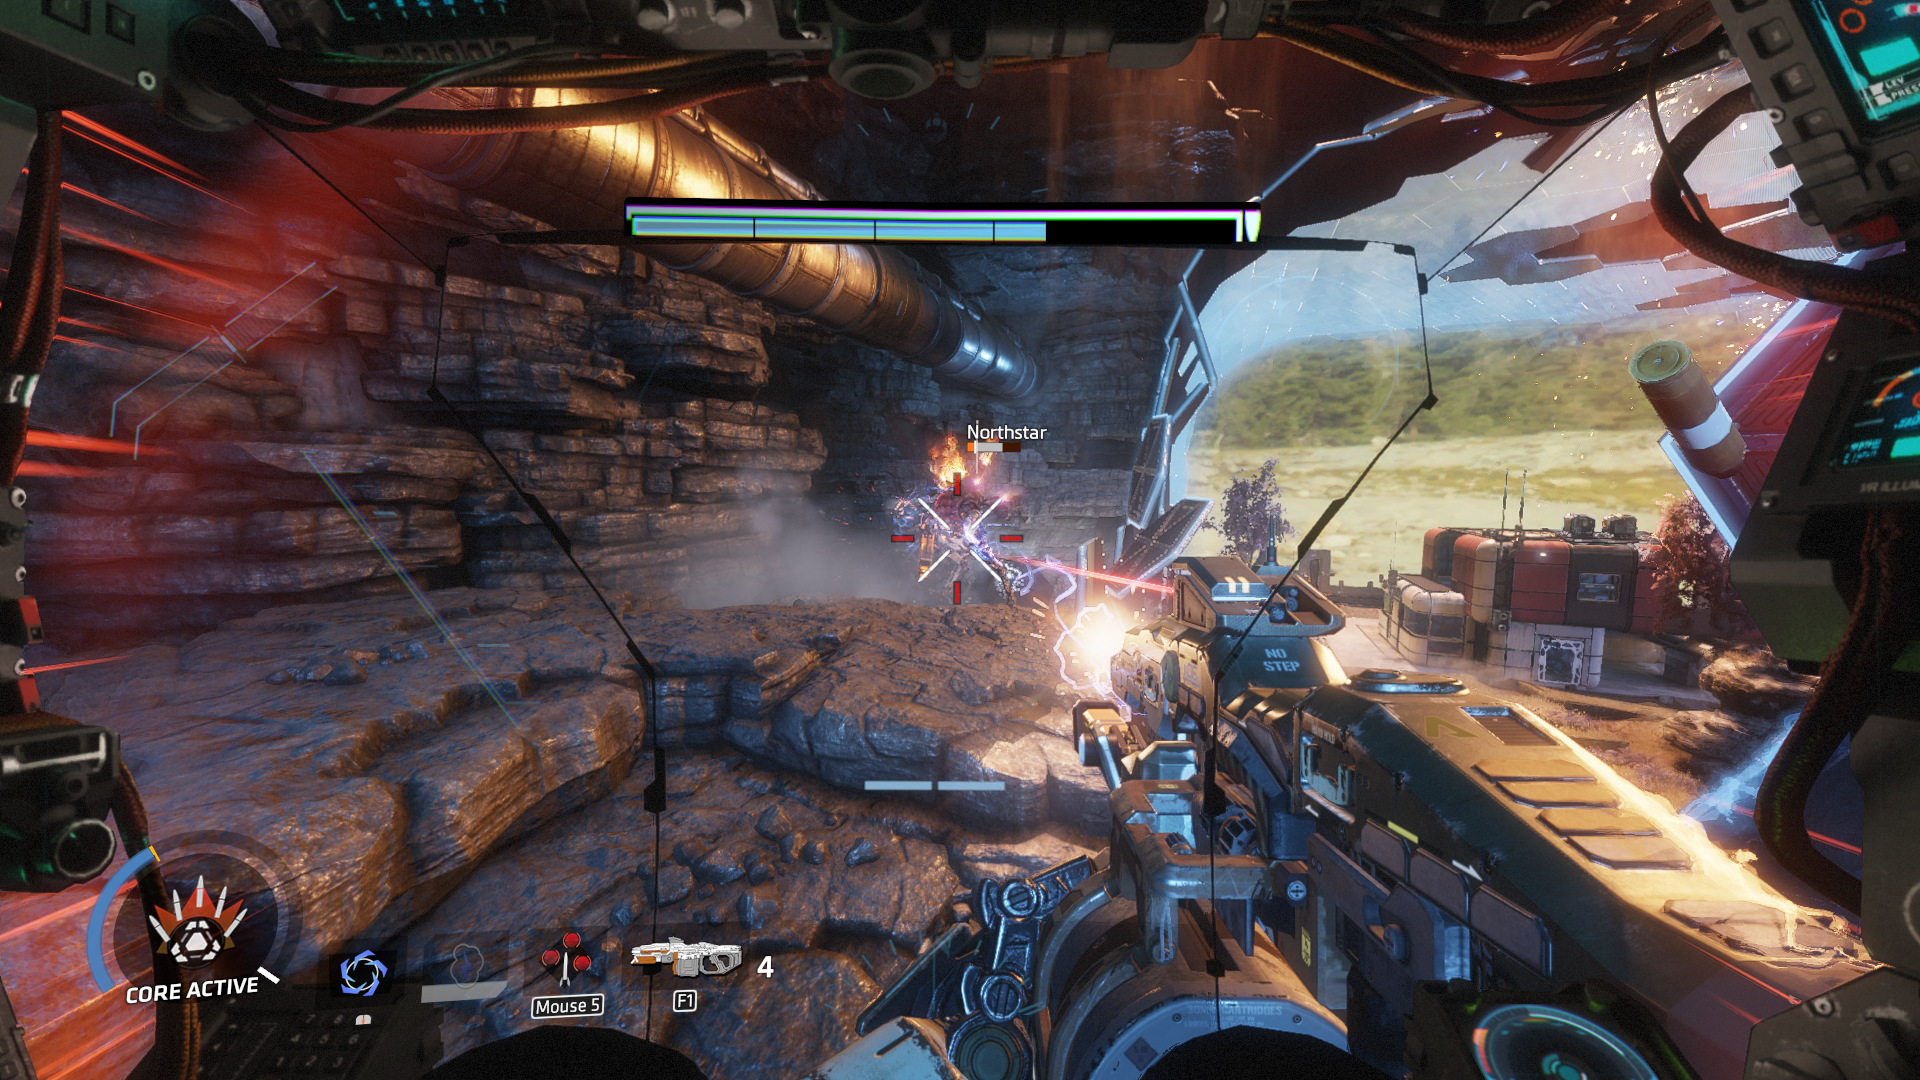 titanfall long matchmaking ‹ venturebeat about respawn are planning to roll out new maps and a new mech for titanfall 2 before the end to matchmaking like estimated wait.